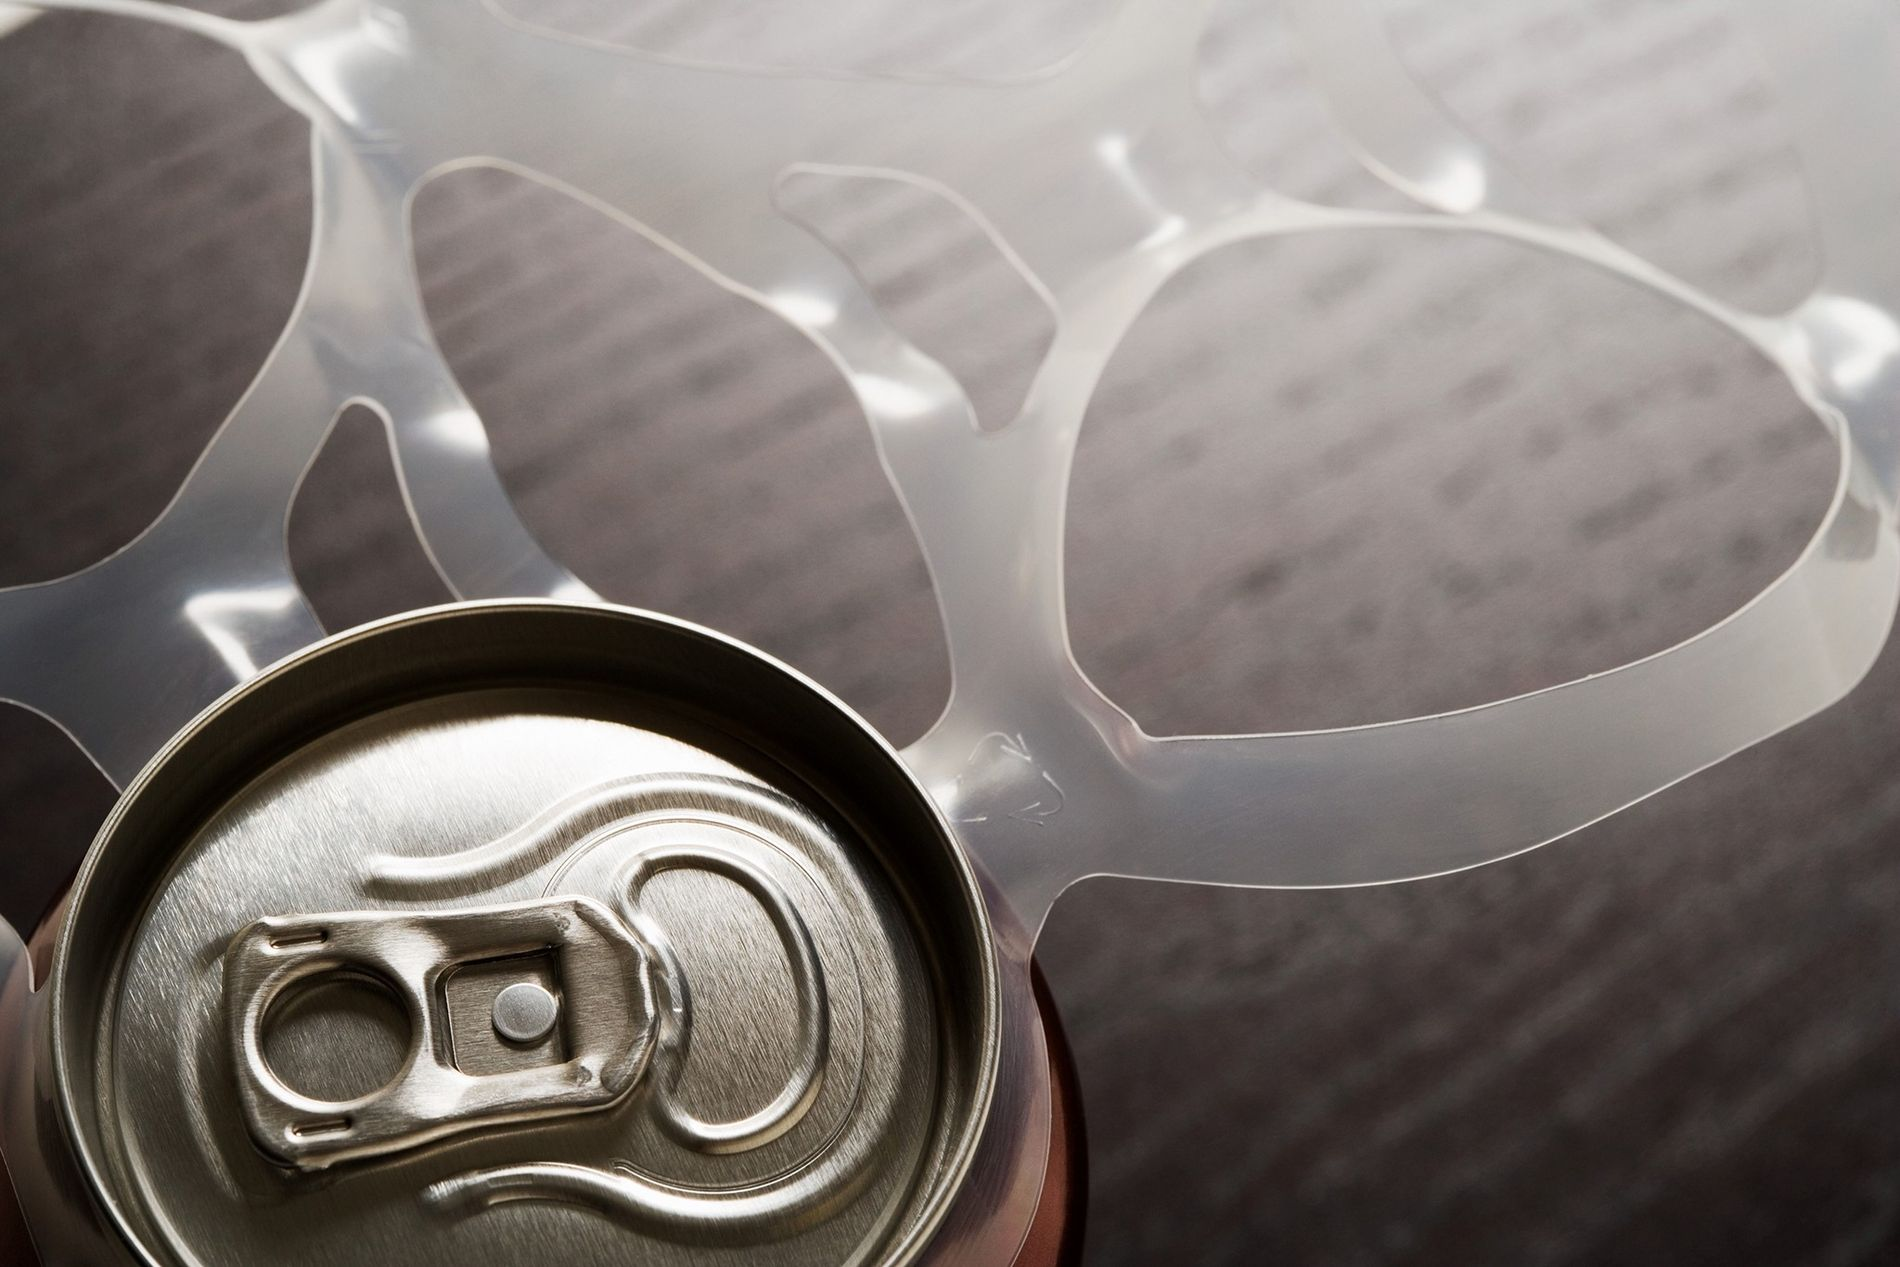 Plastic six-pack rings were first manufactured in the 1960s. By the 1970s, environmentalists were already calling ...